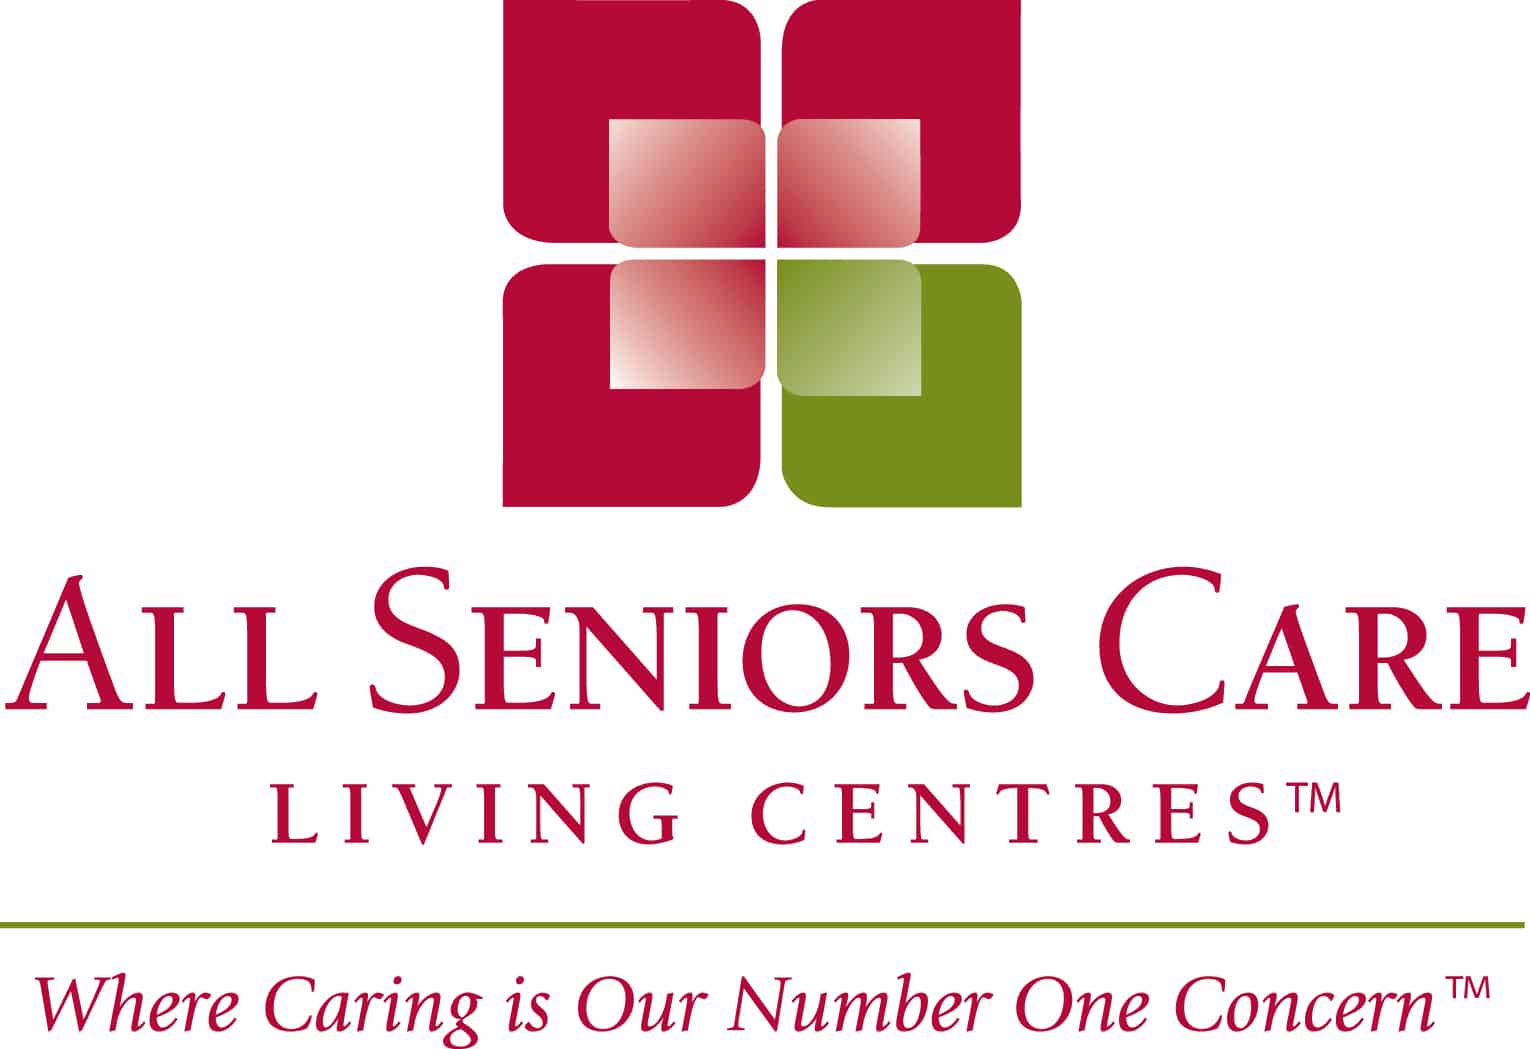 All Seniors Care logo